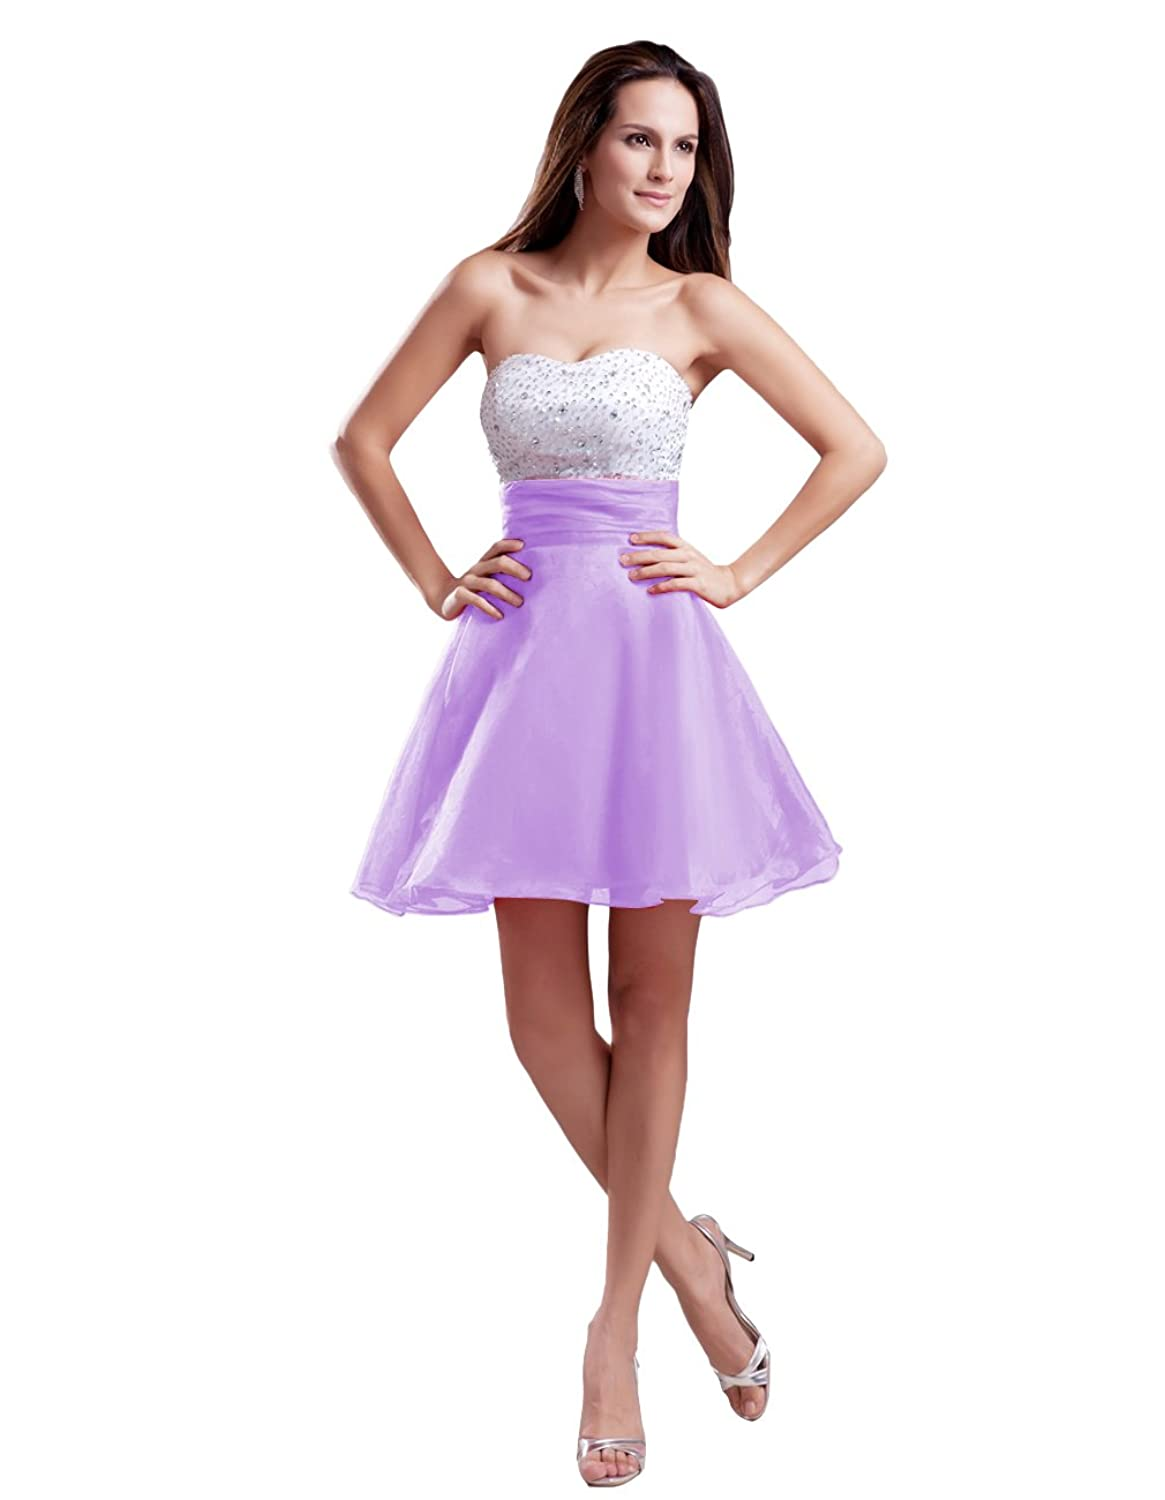 Diyouth Short Sexy Chiffon Party Homecoming Dress with Sequins Bodice